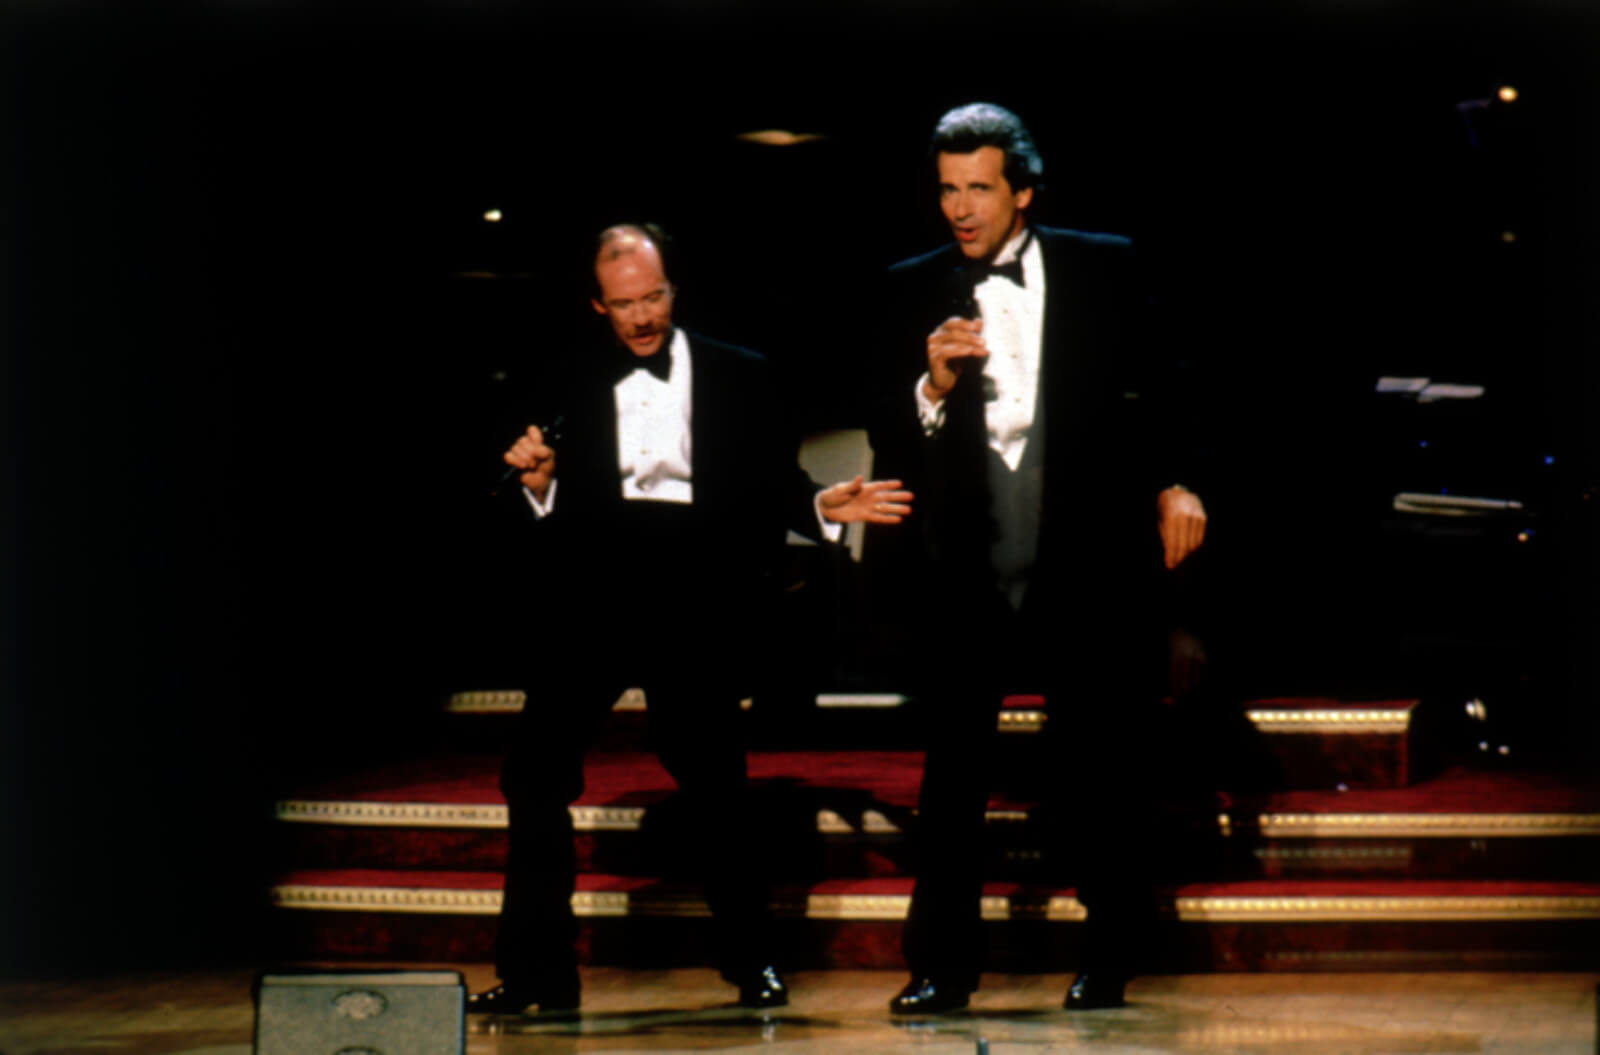 Michael Jeter and James Naughton. Both in suits, singing and dancing.